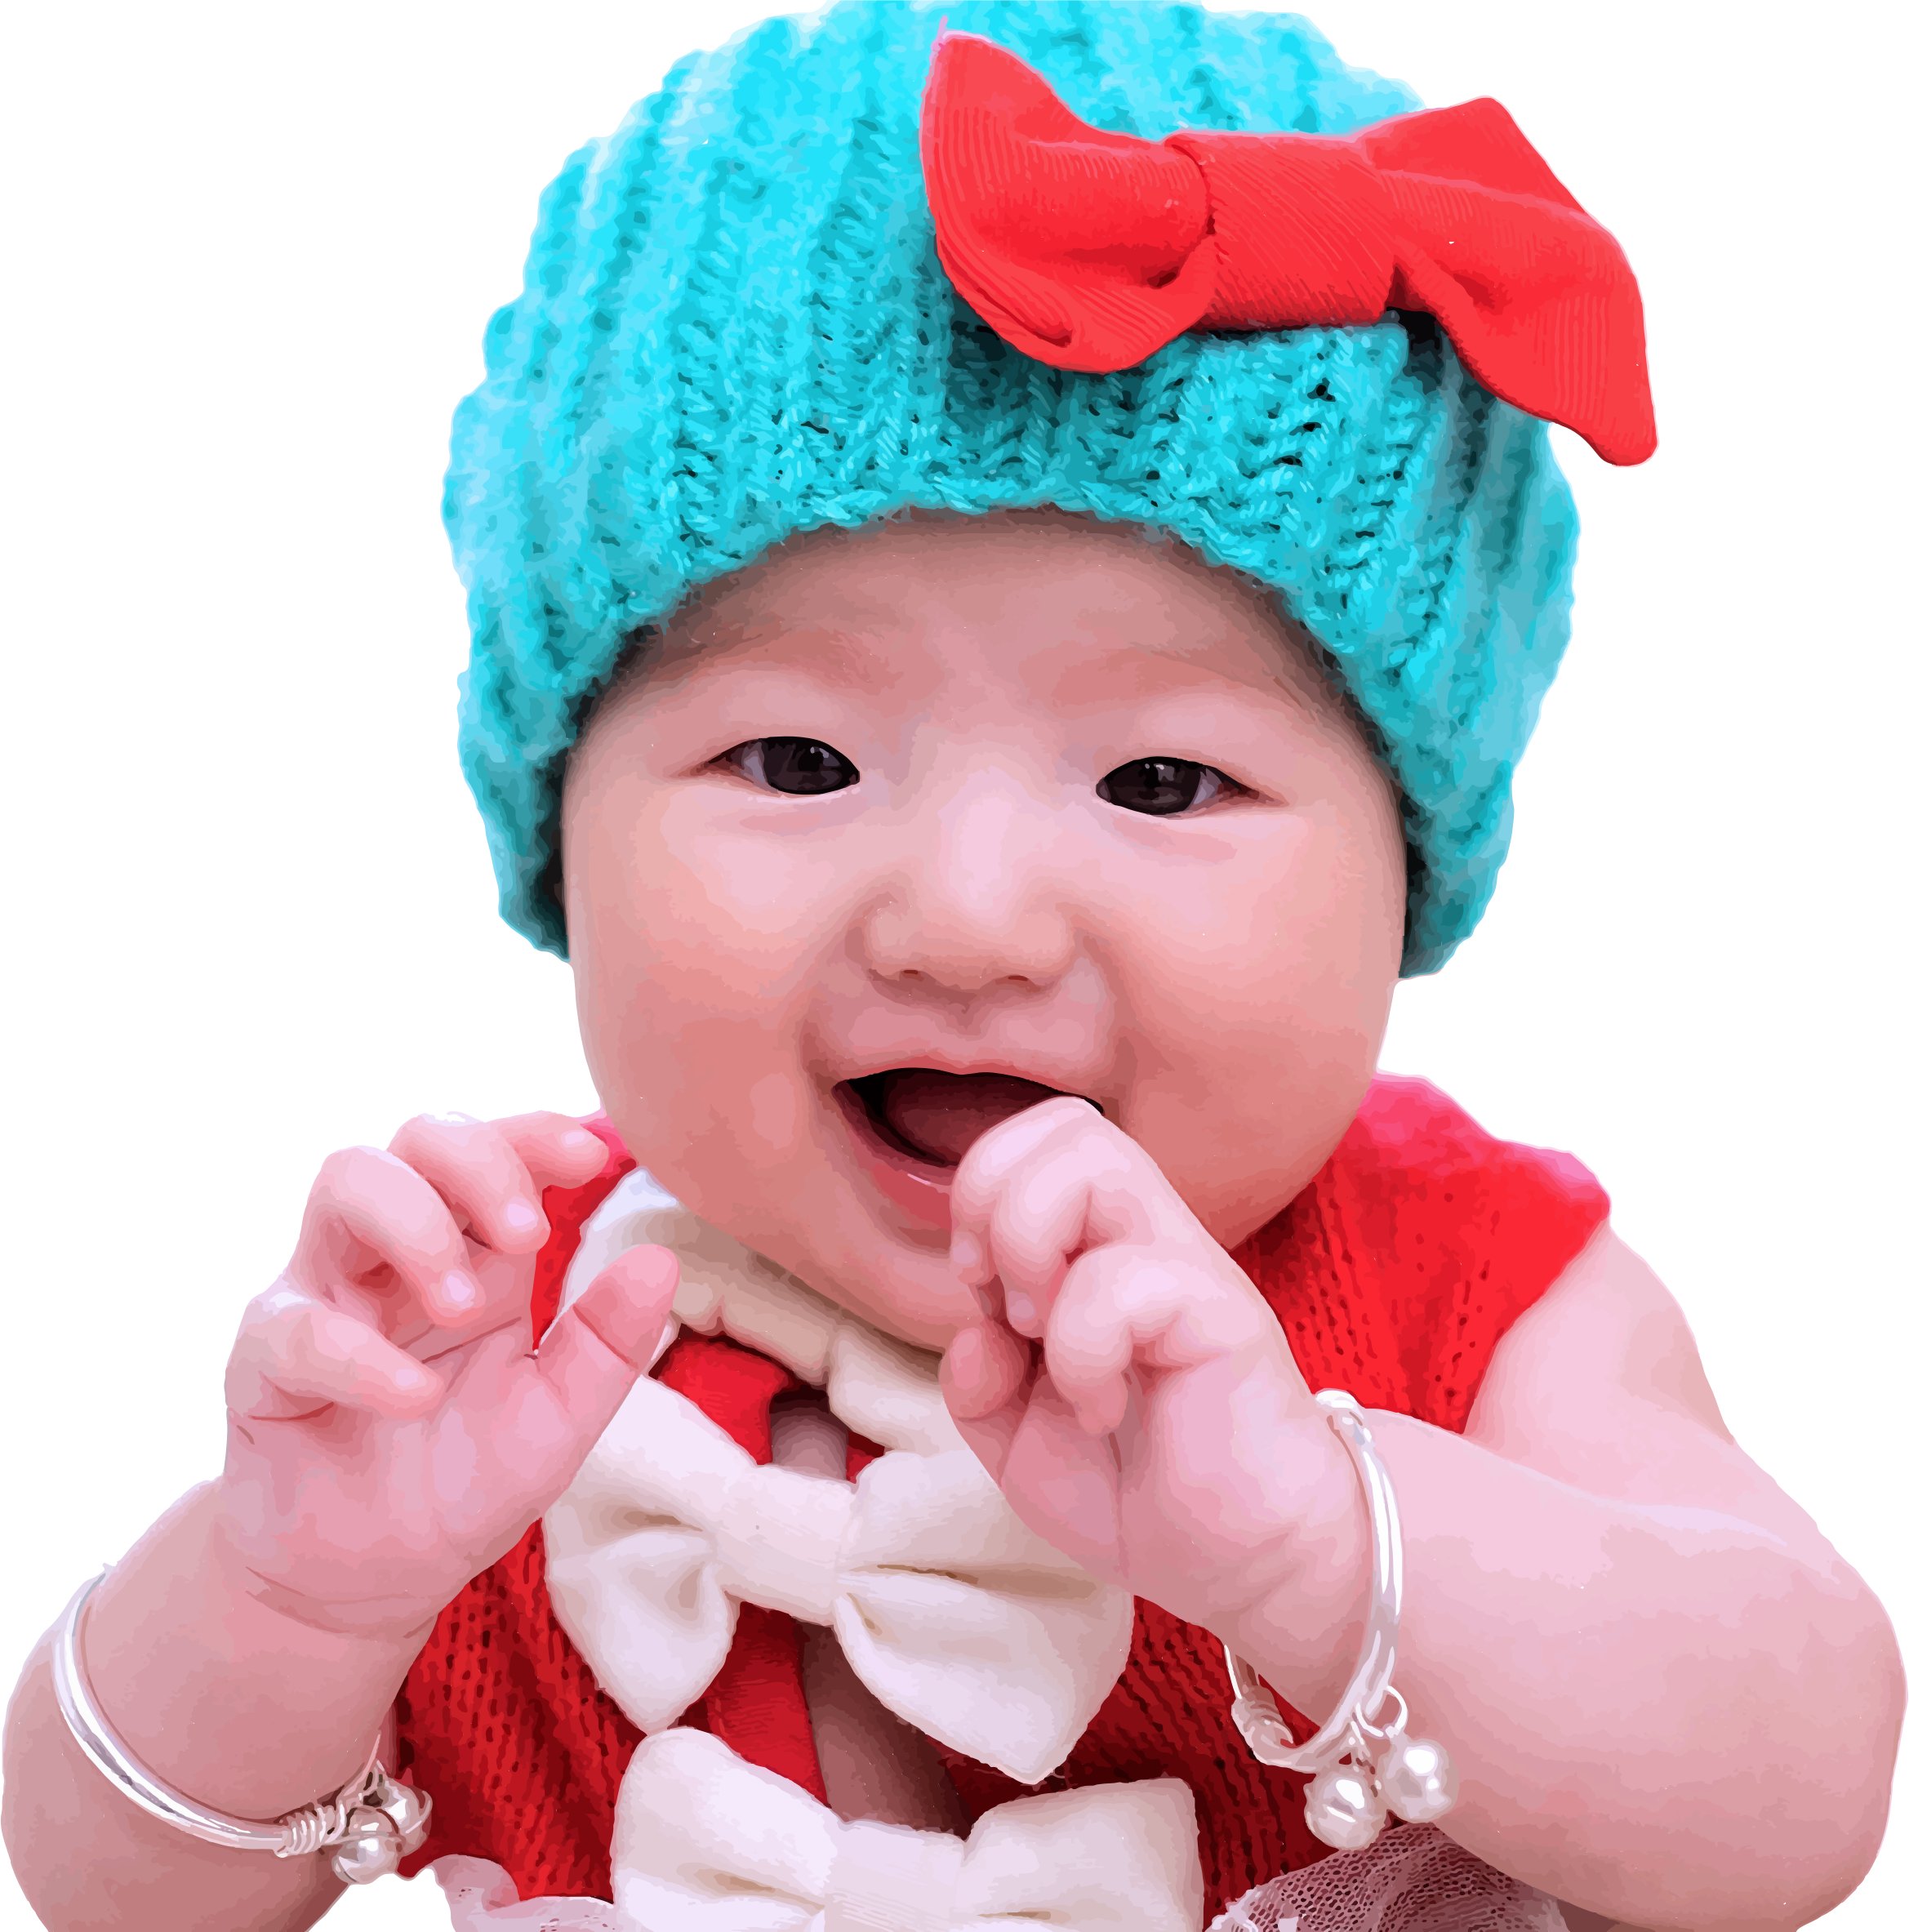 free photo: cute baby - innocent, smile, happy - non-commercial